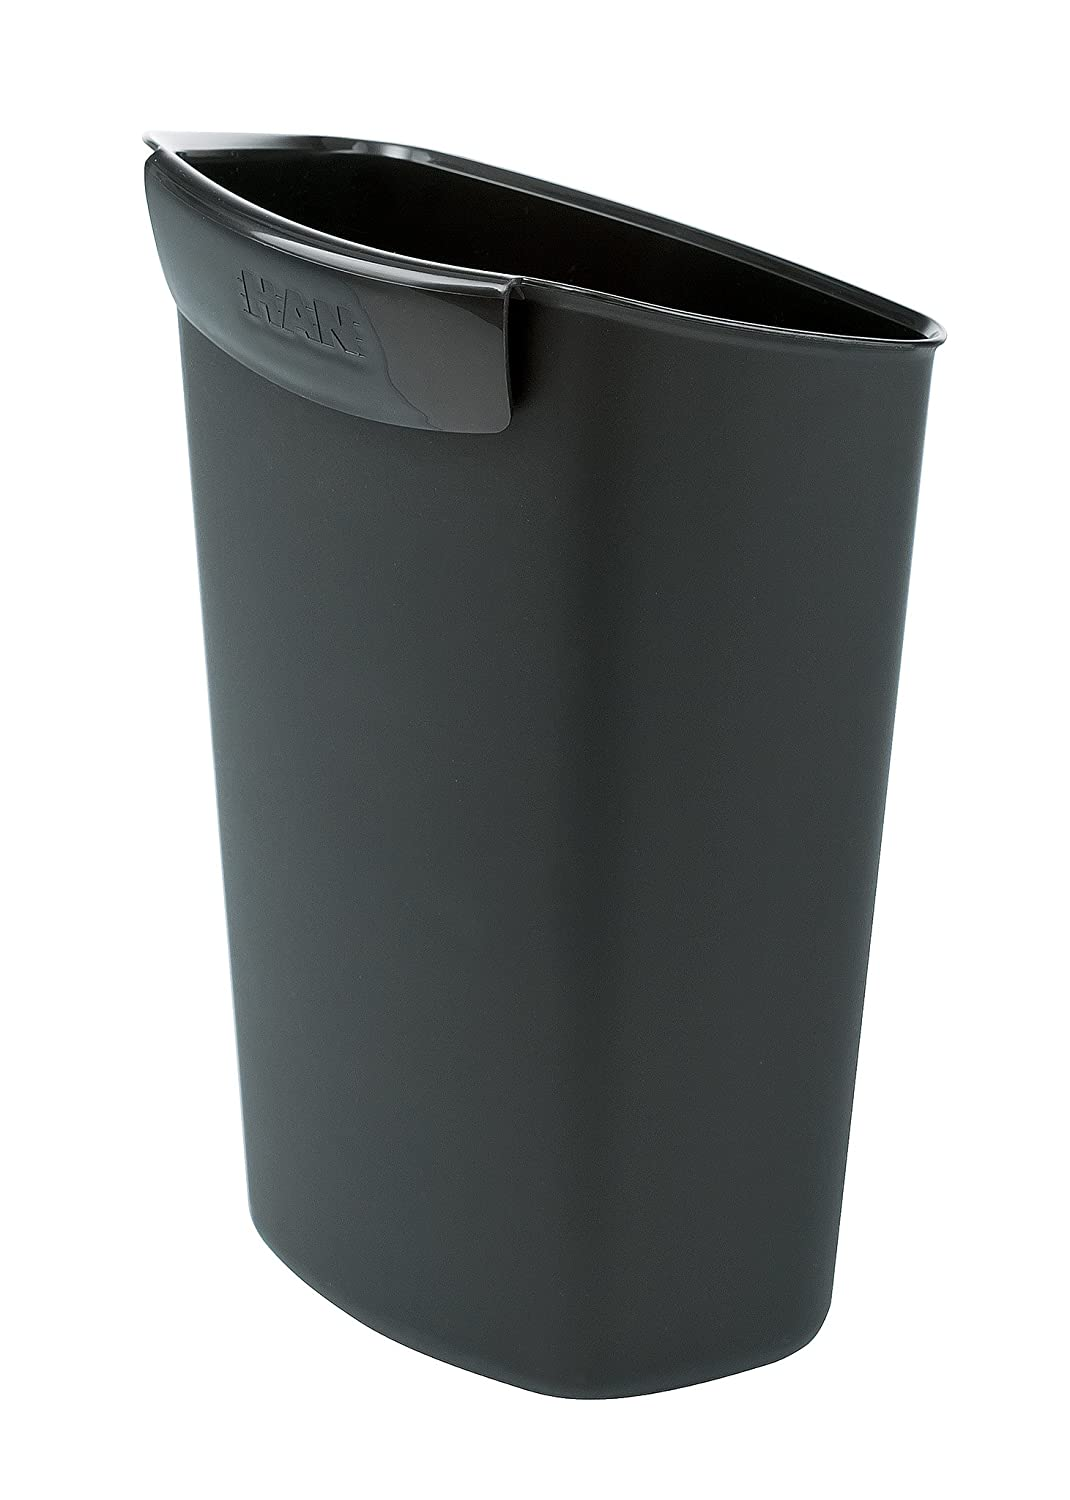 Han 18355-11 Waste Paper Bin Insert 2.5 Litres for 18190 u.18130 black 18355-13